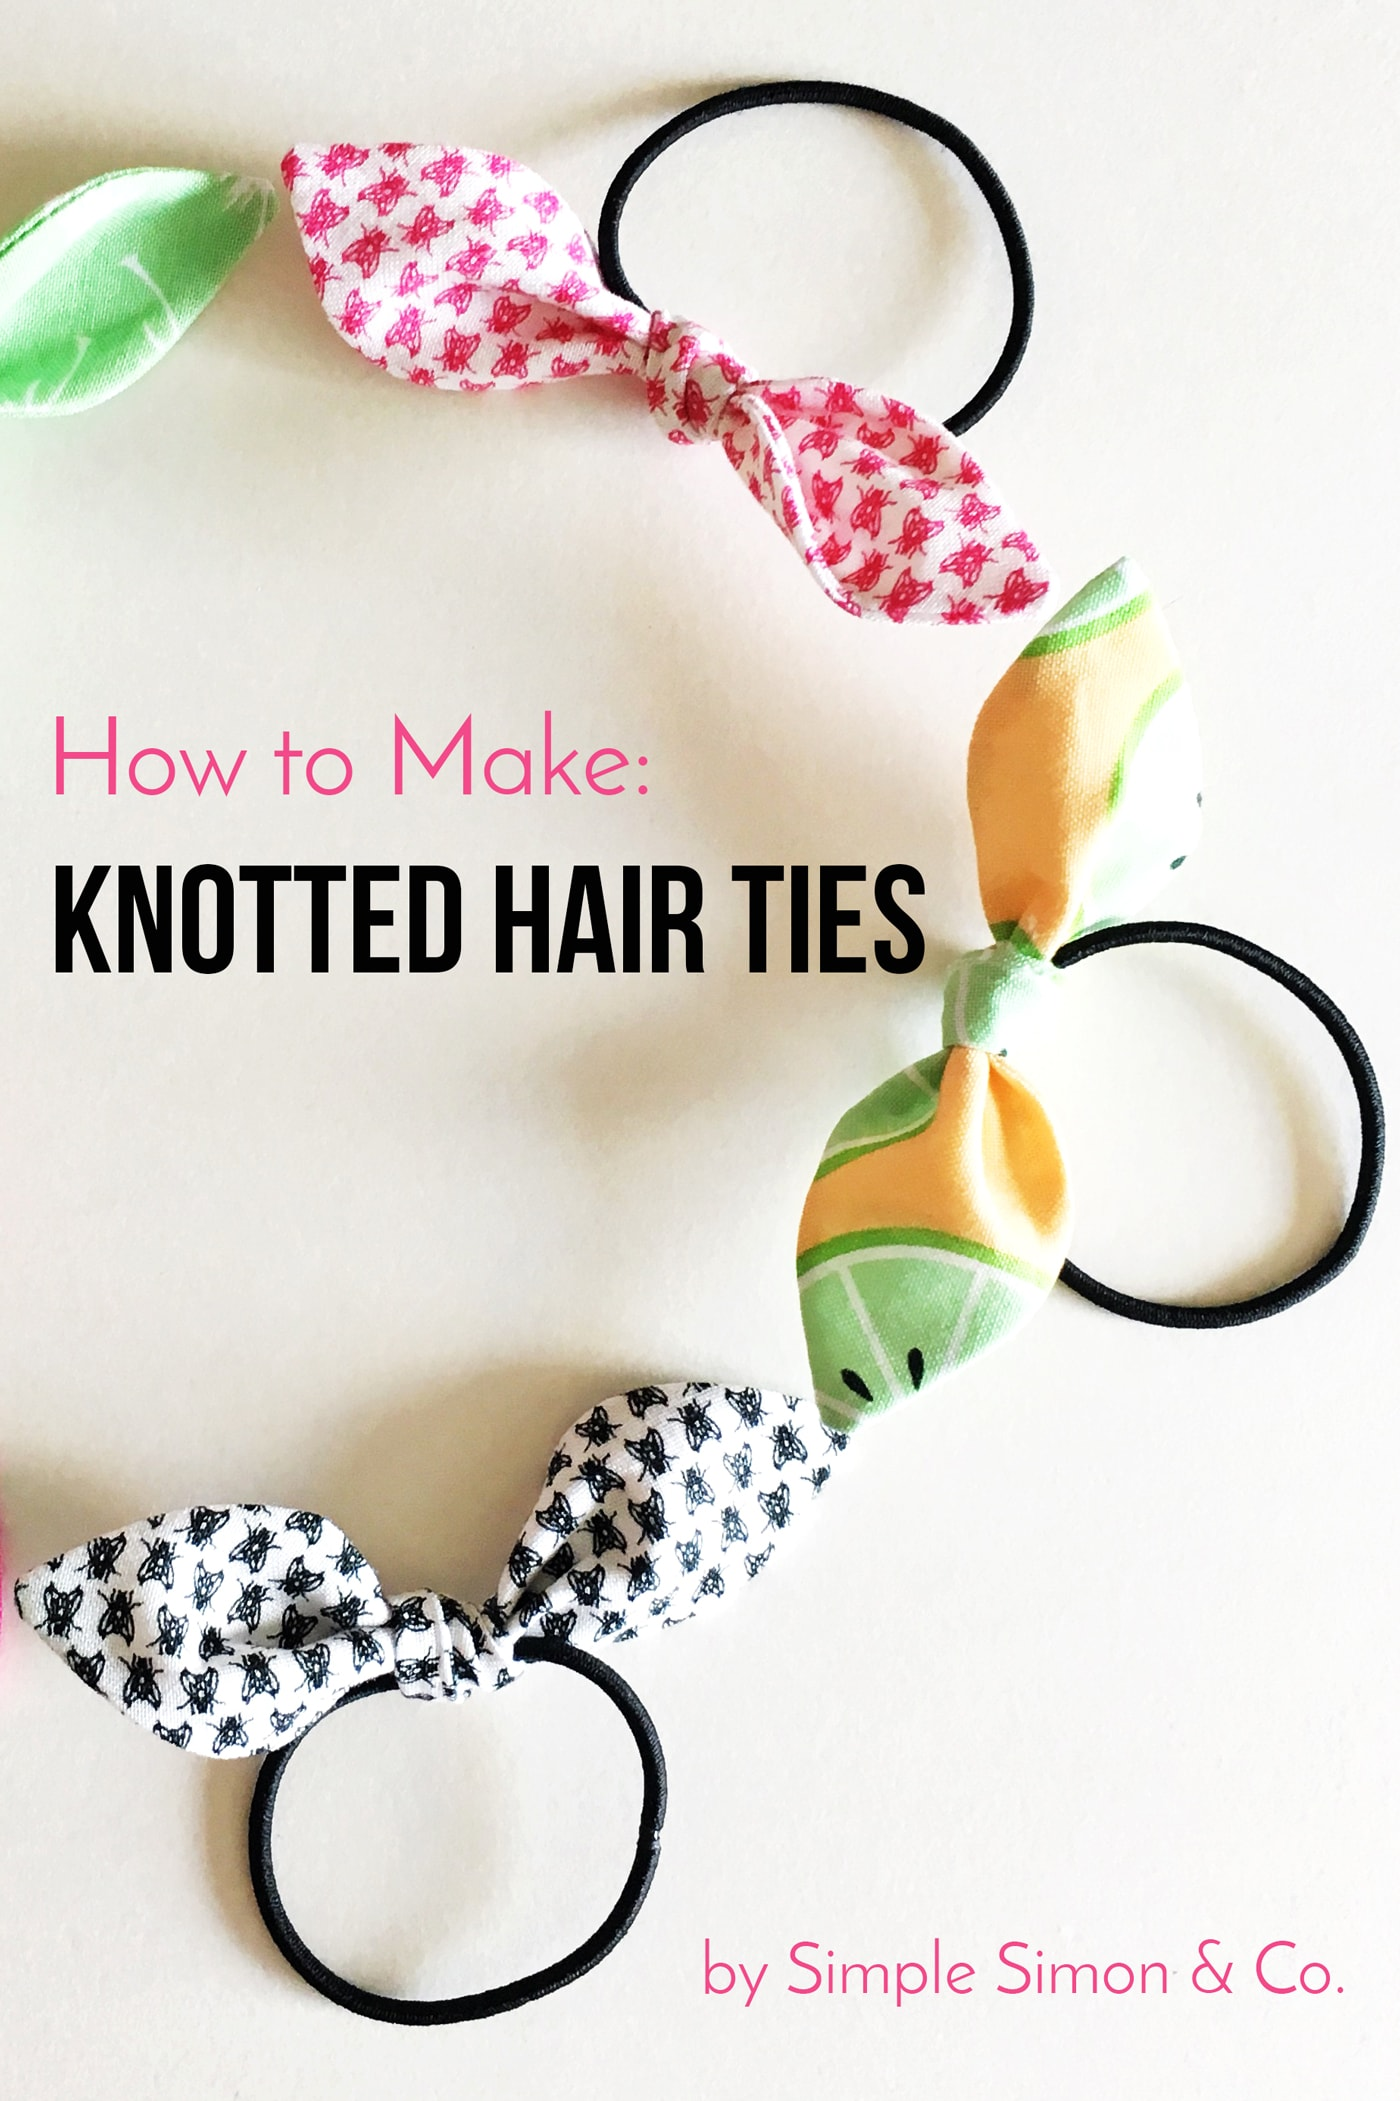 How to Make Knotted Hair Ties